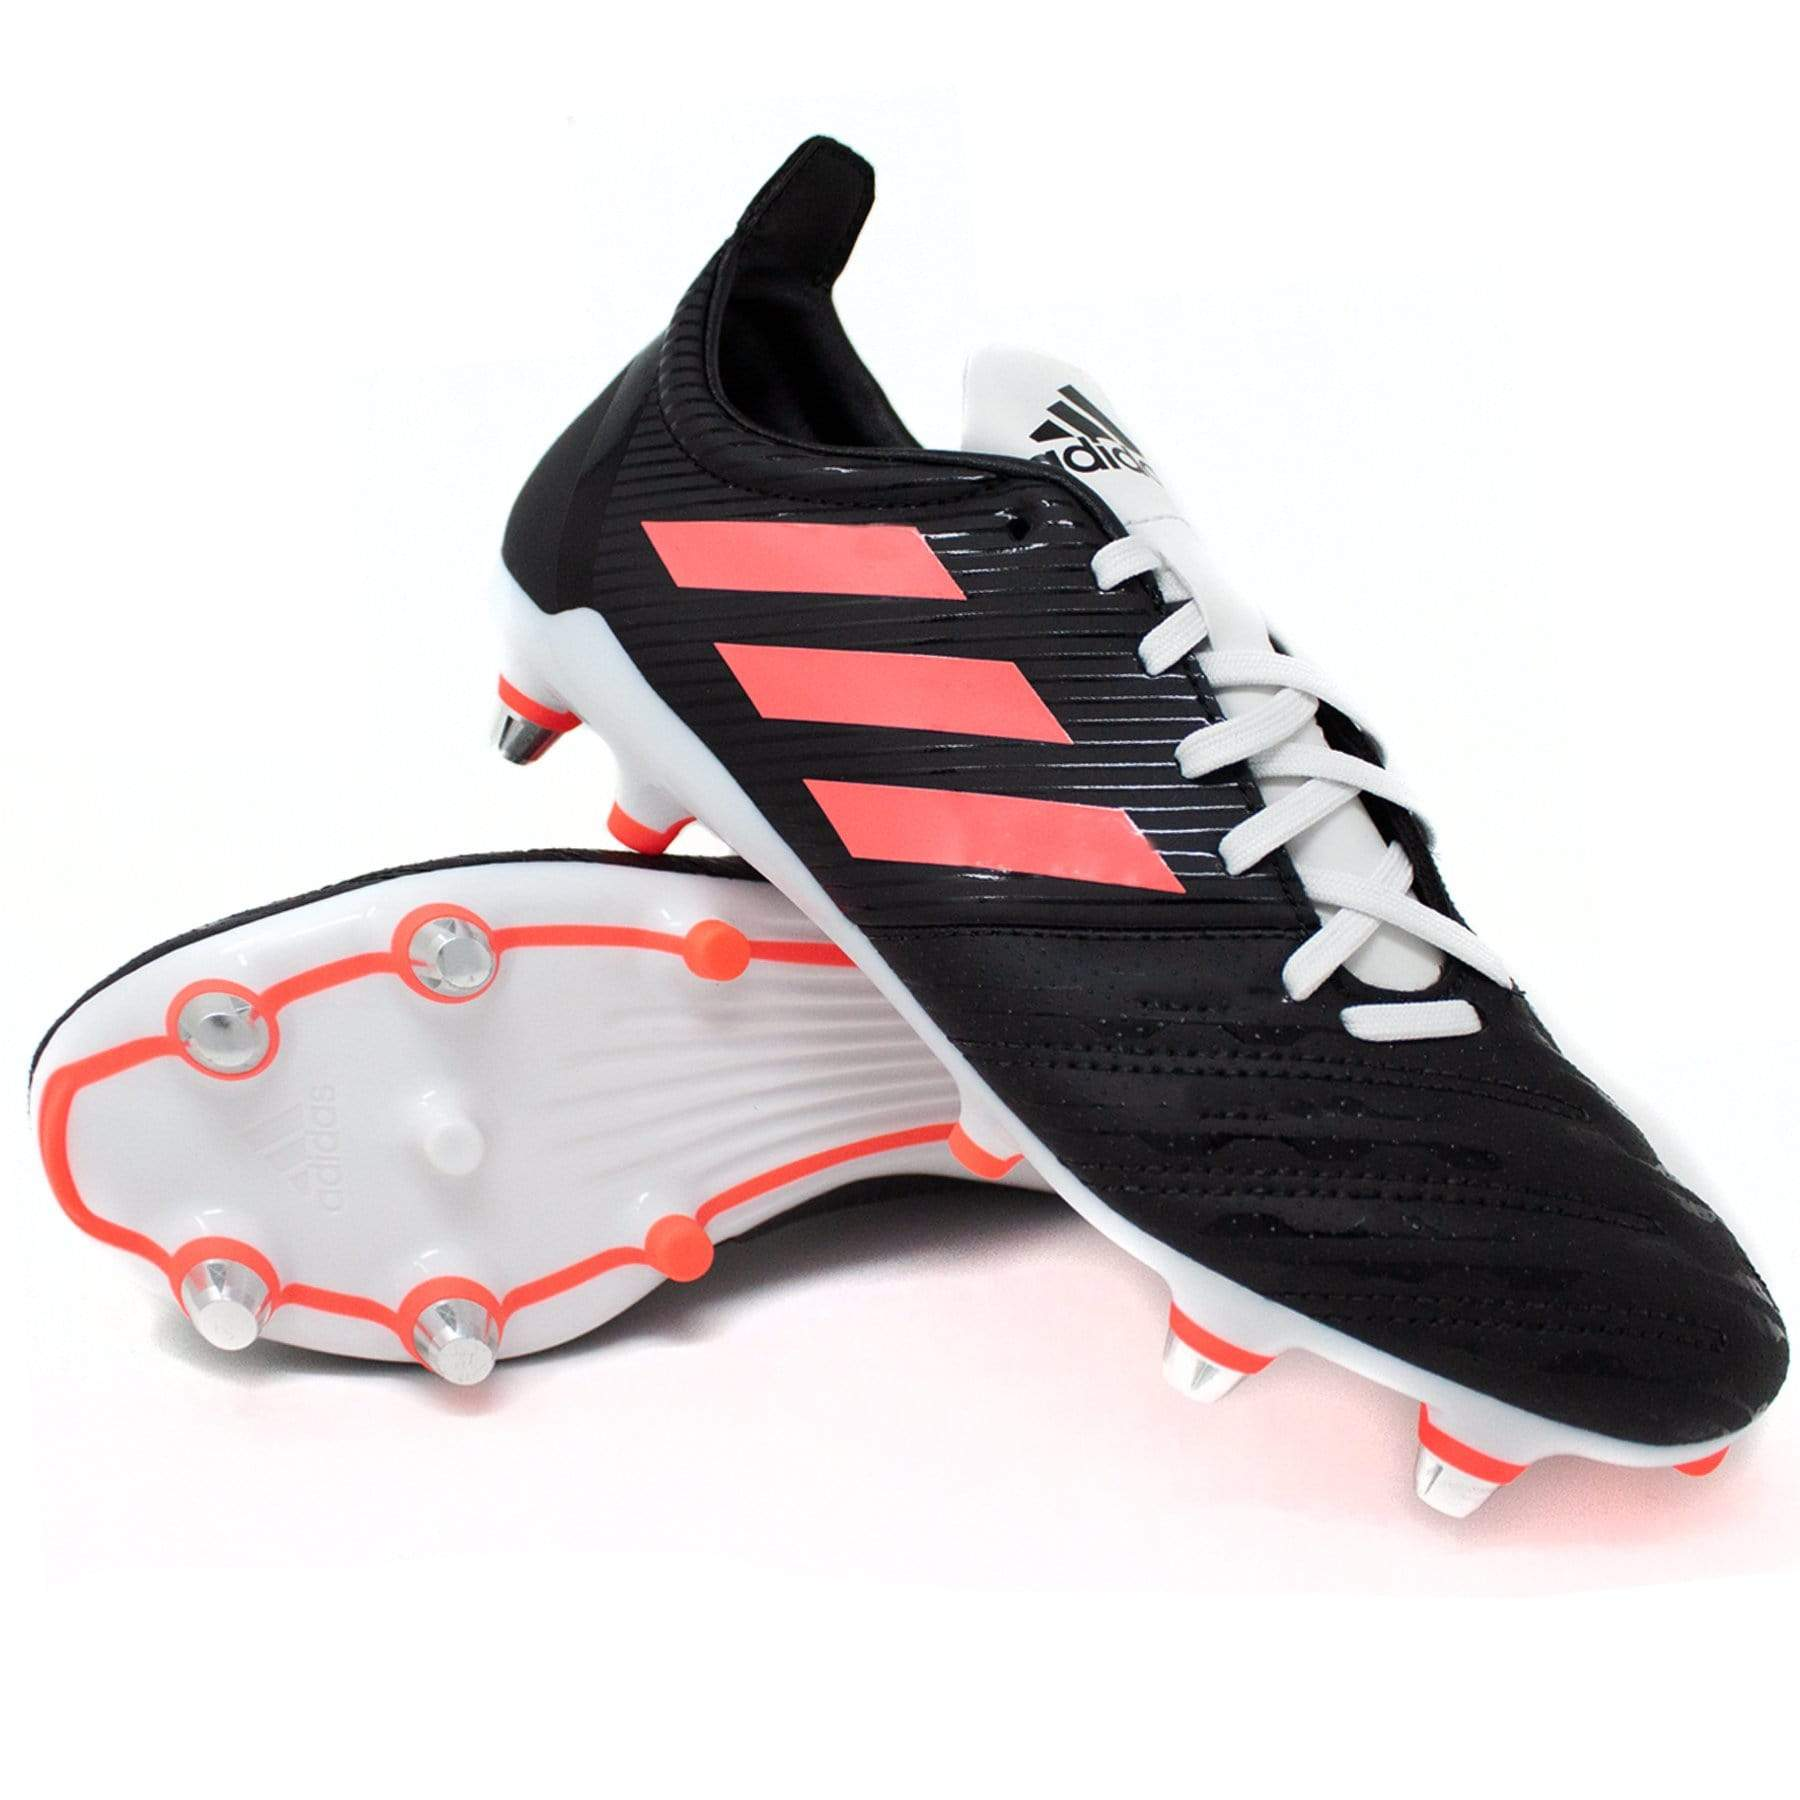 adidas FW20 Malice SG Rugby Boots